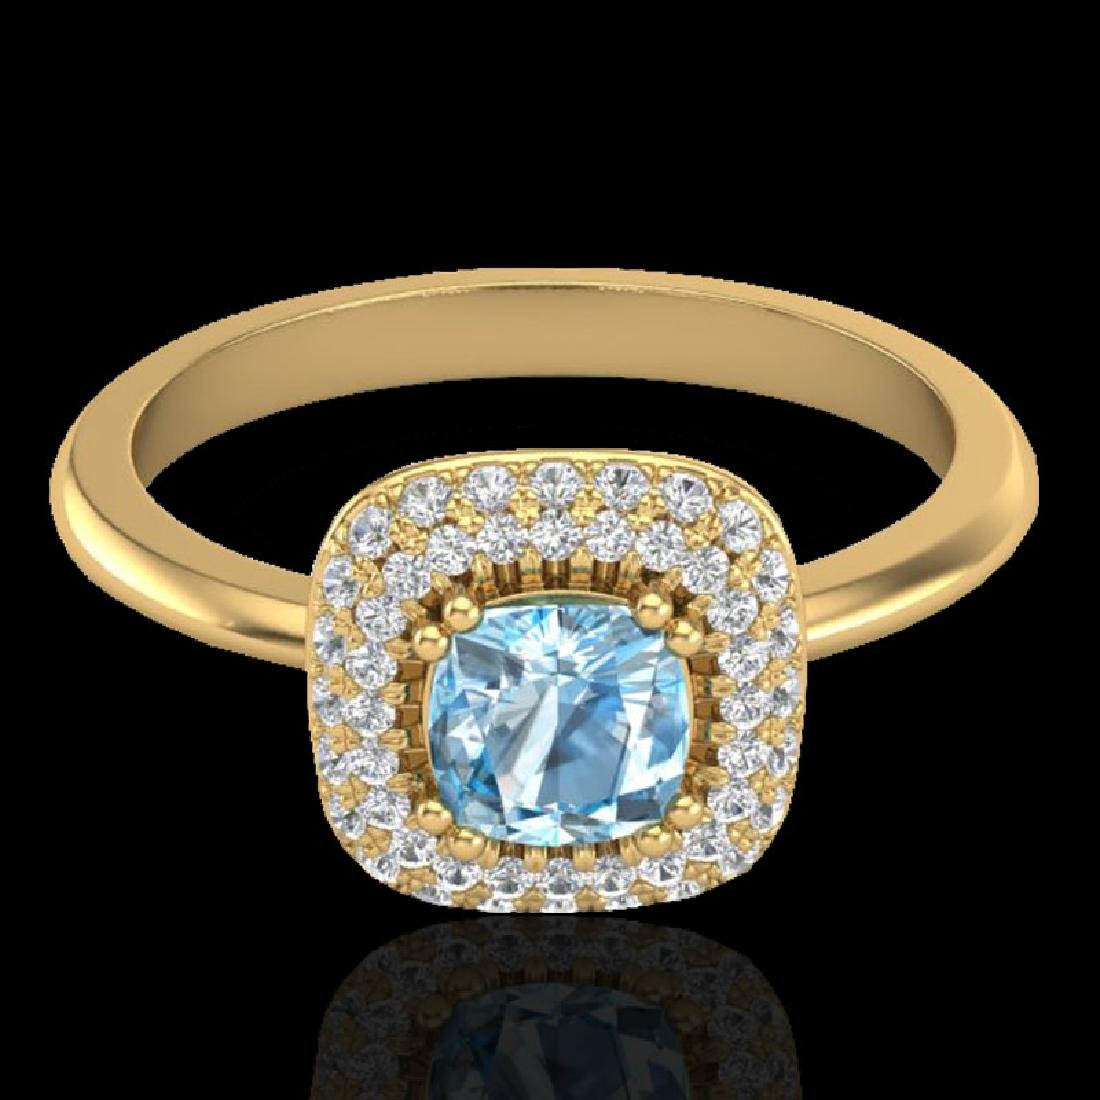 1.16 CTW Sky Blue Topaz & Micro VS/SI Diamond Ring